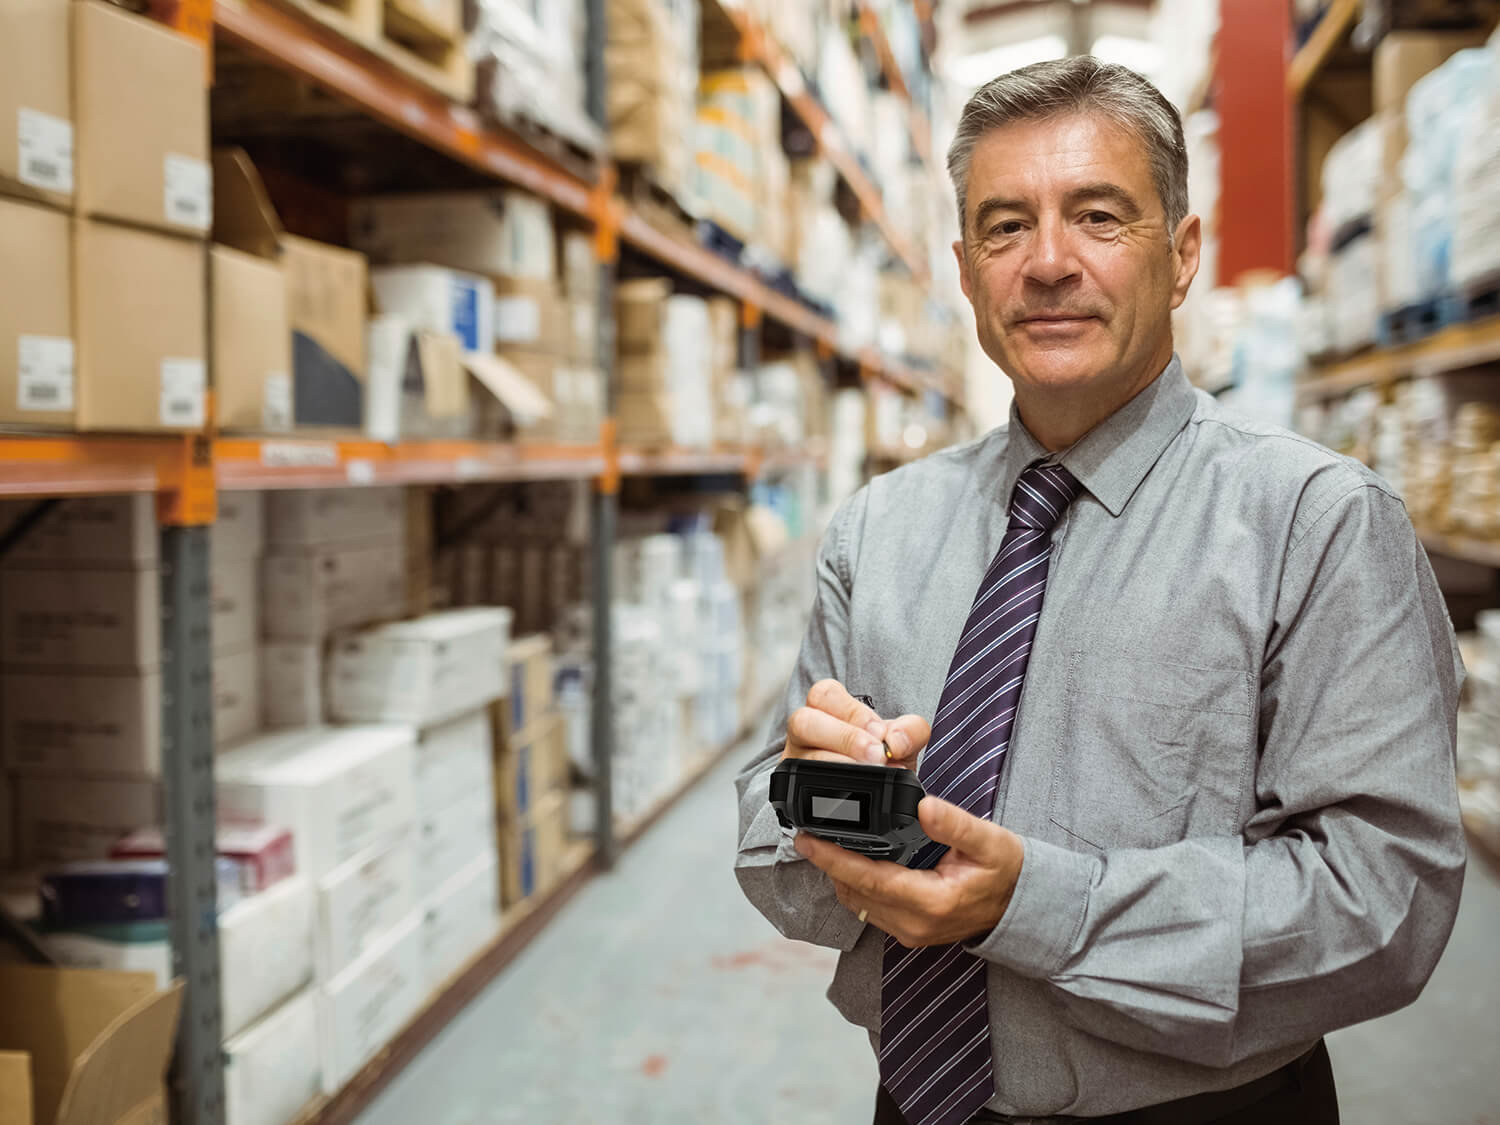 Warehousing Applications - Mobile Inventory Management|Australia CipherLab world leader in AIDC solutions